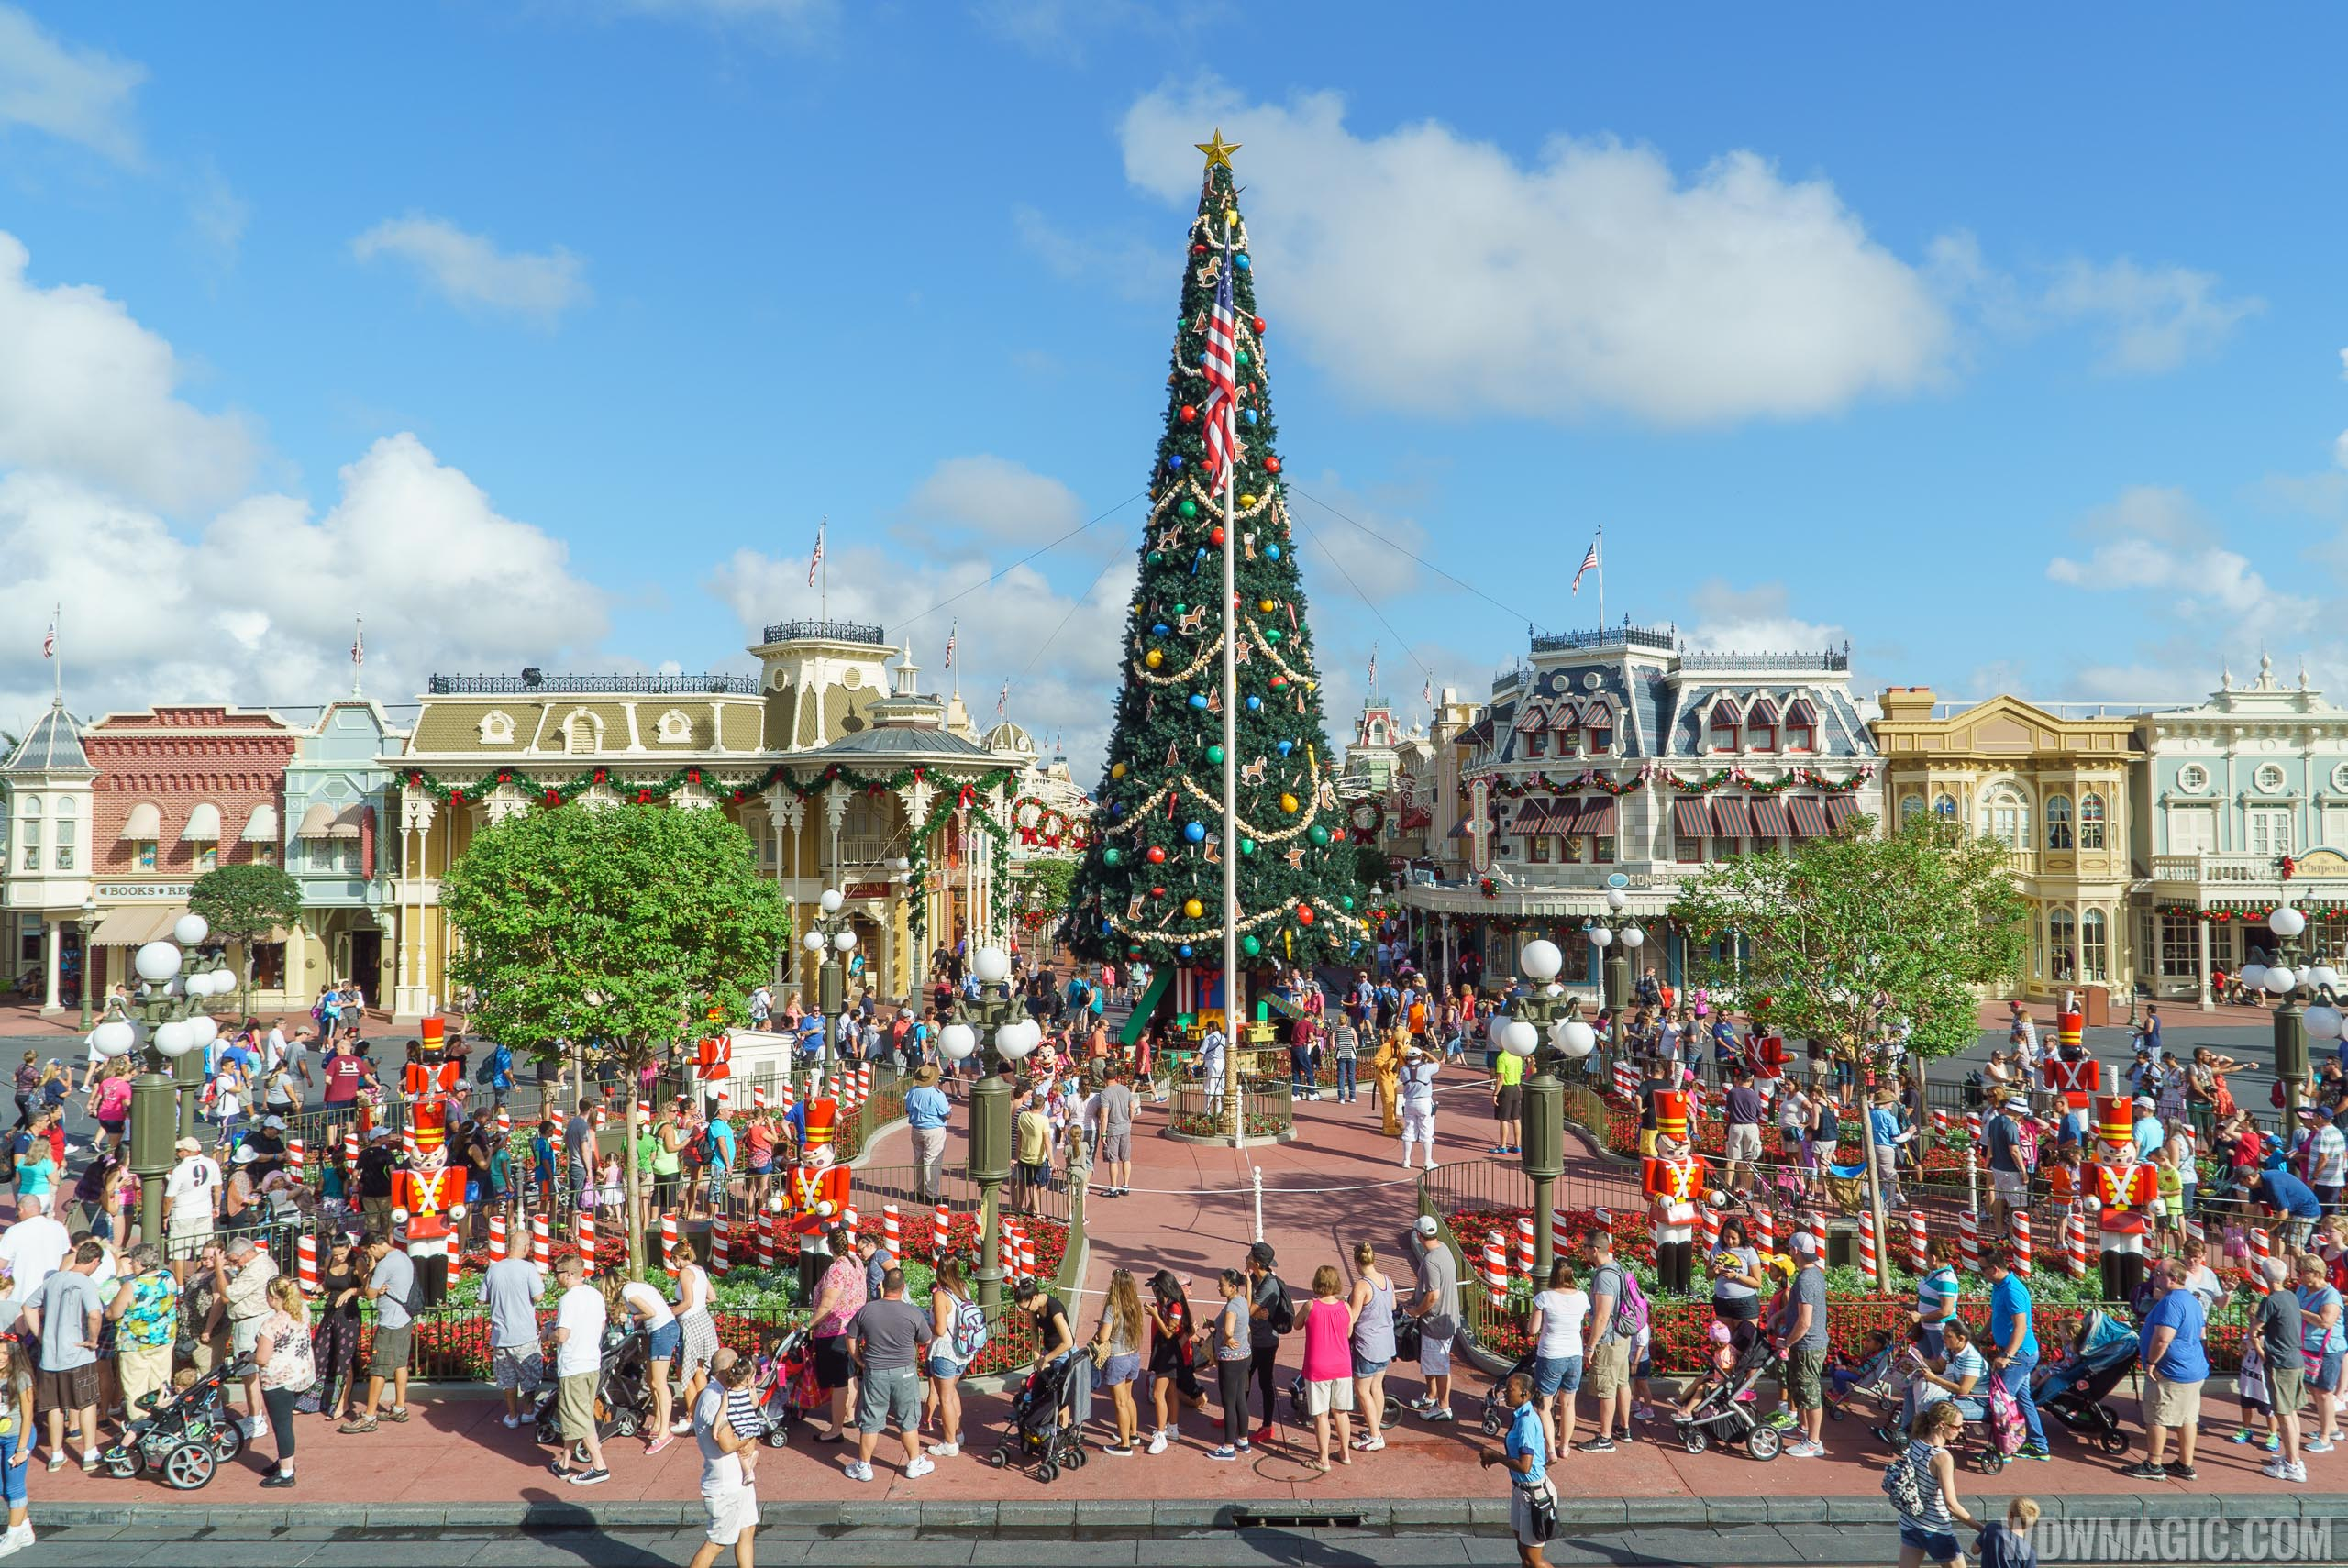 Photos Holidays Get Underway At The Magic Kingdom Complete With Christmas Tree